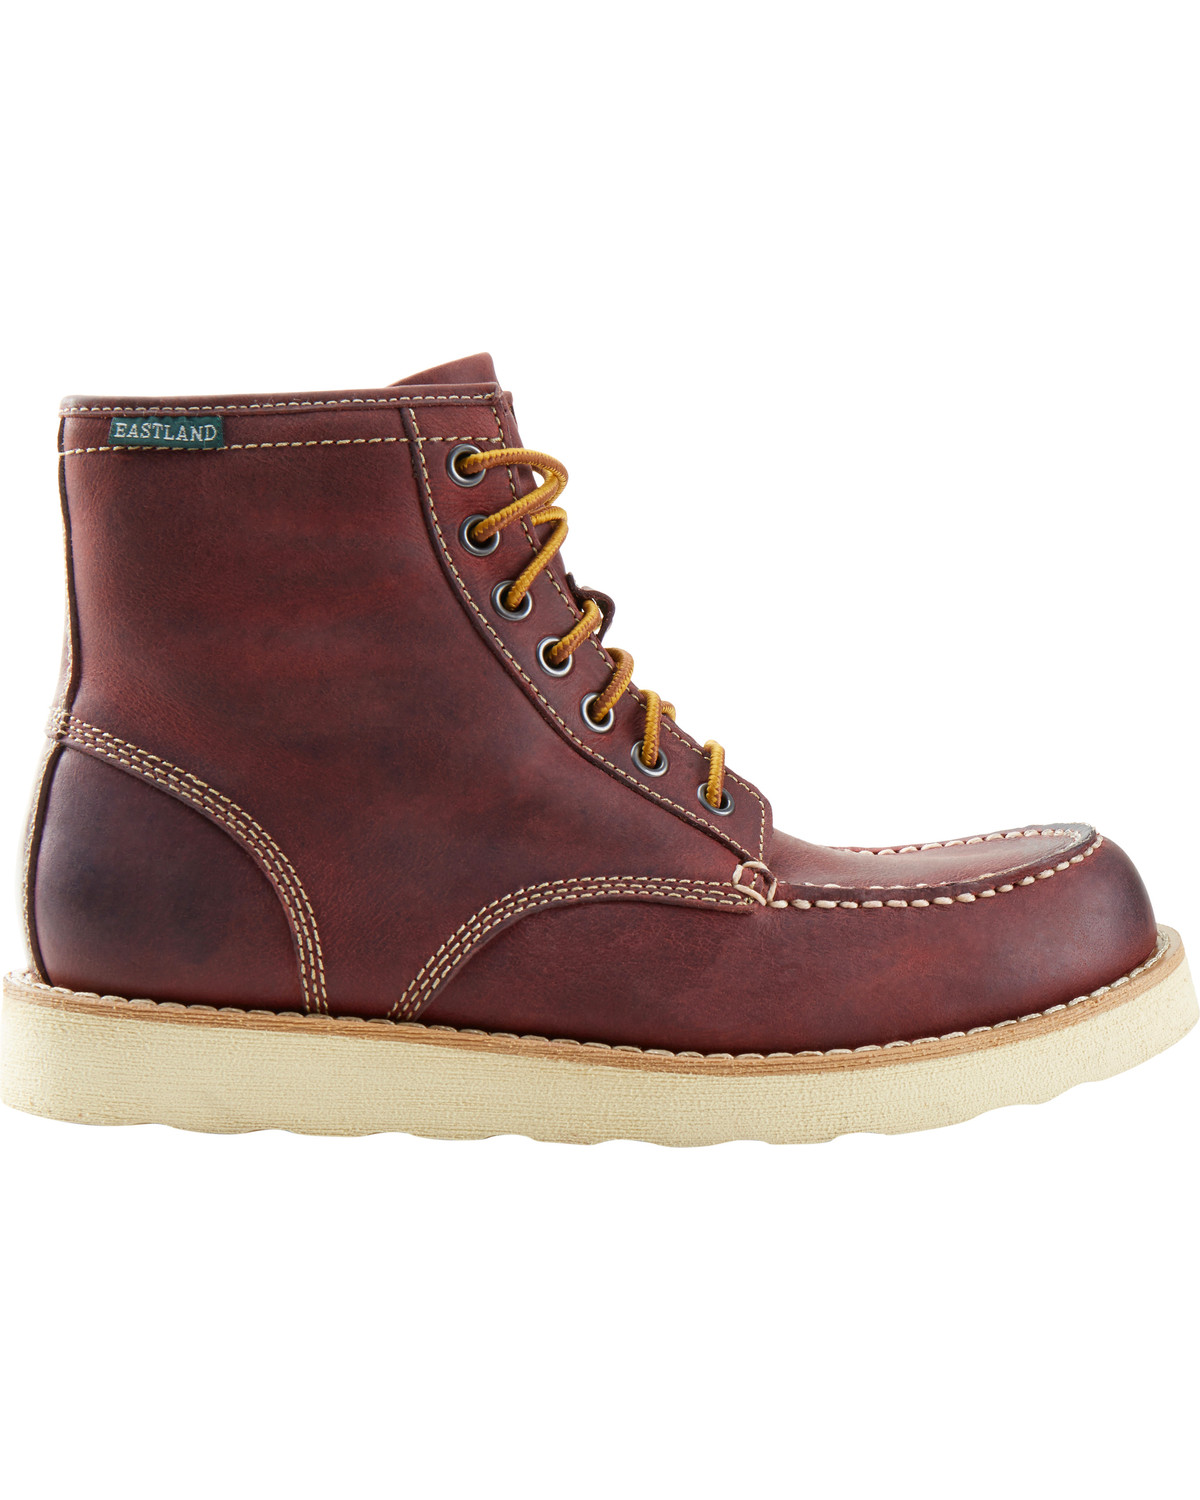 Eastland - Lumber - Lace-Up Mens Boots Online - Oxblood